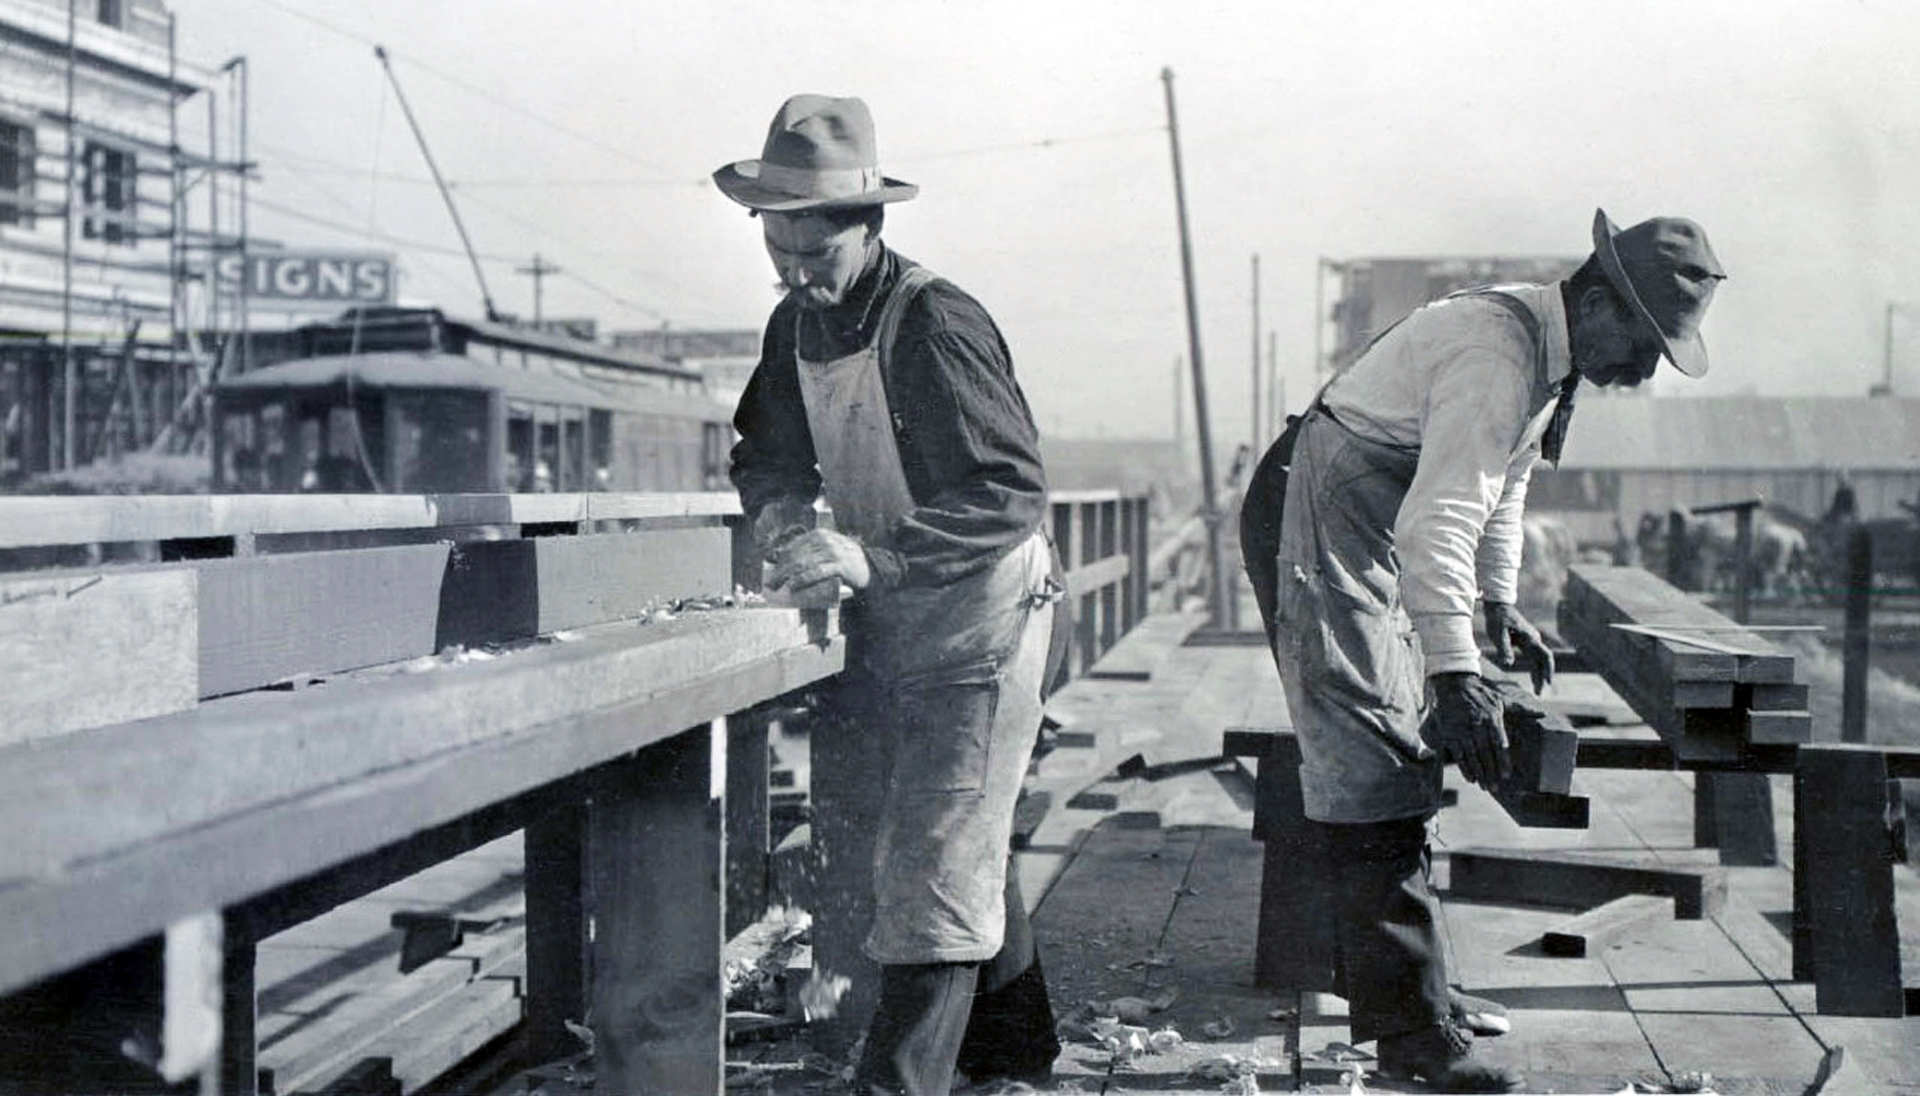 Carpenters rebuild the city after the Earthquake